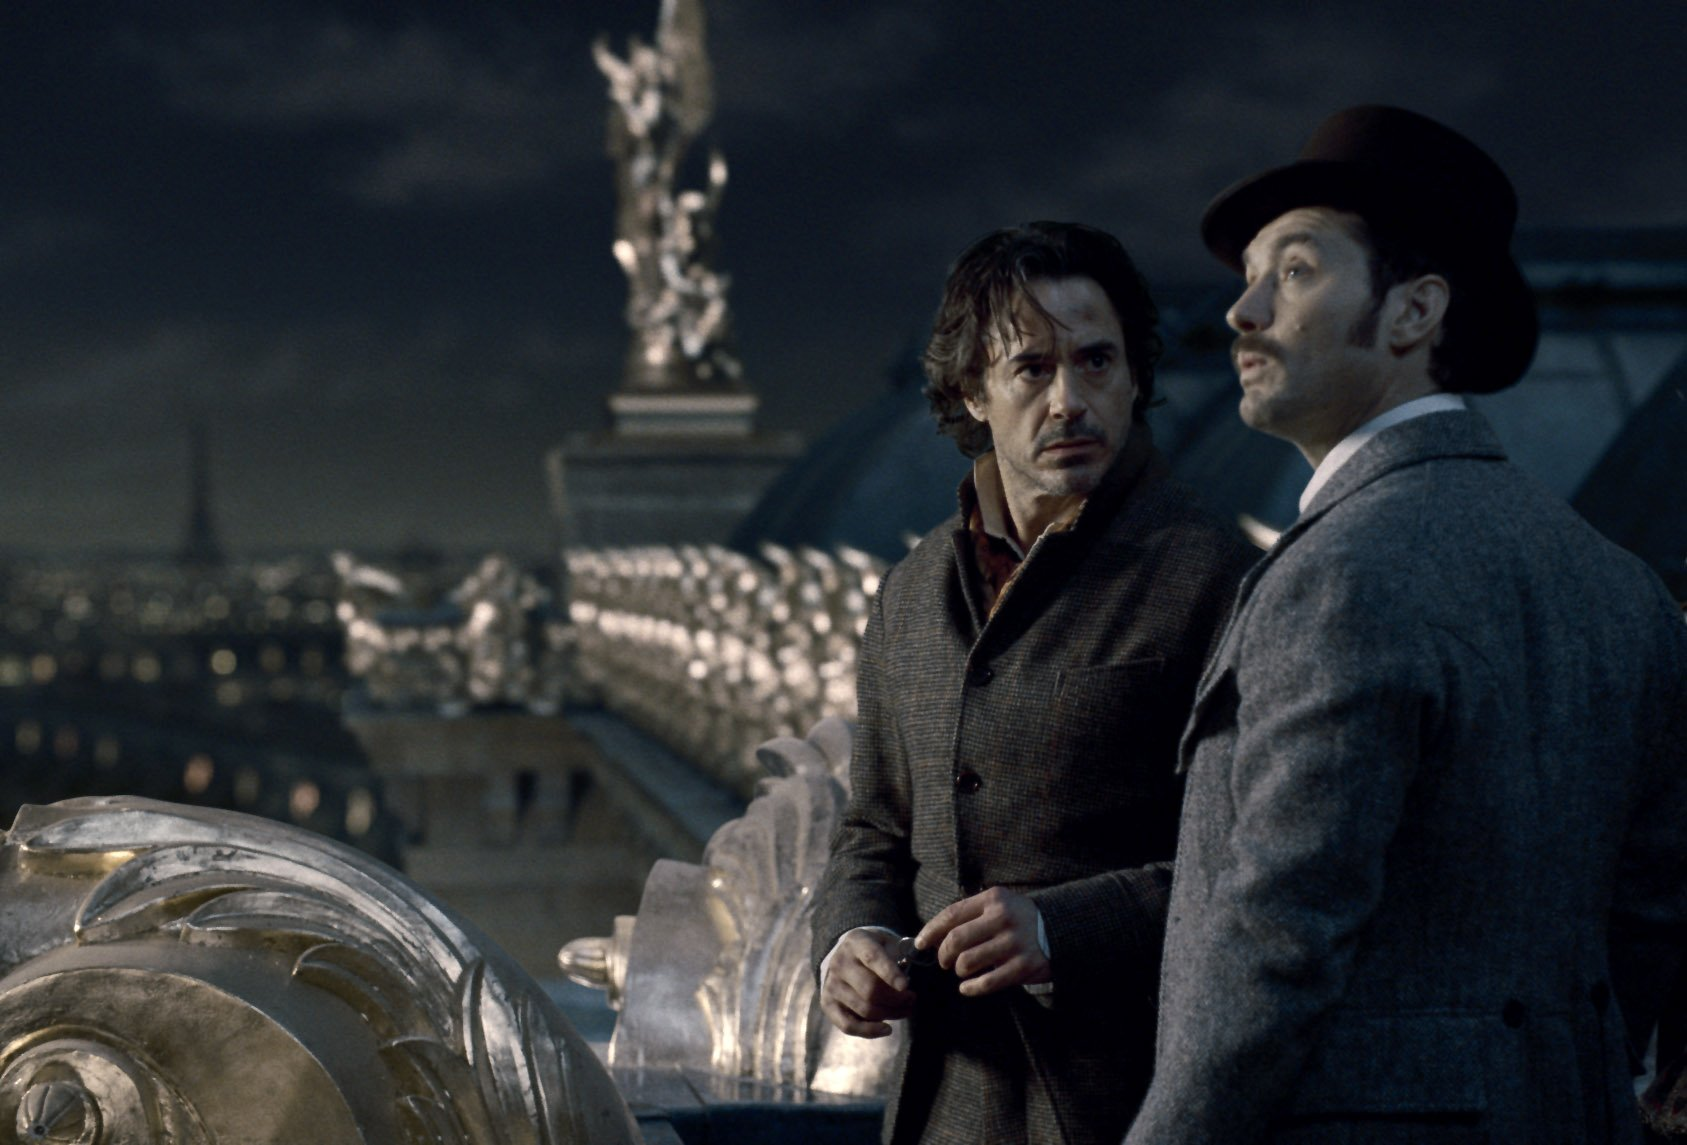 Robert Downey Jr.: We'll Attempt To Make Sherlock Holmes 3 This Year 2